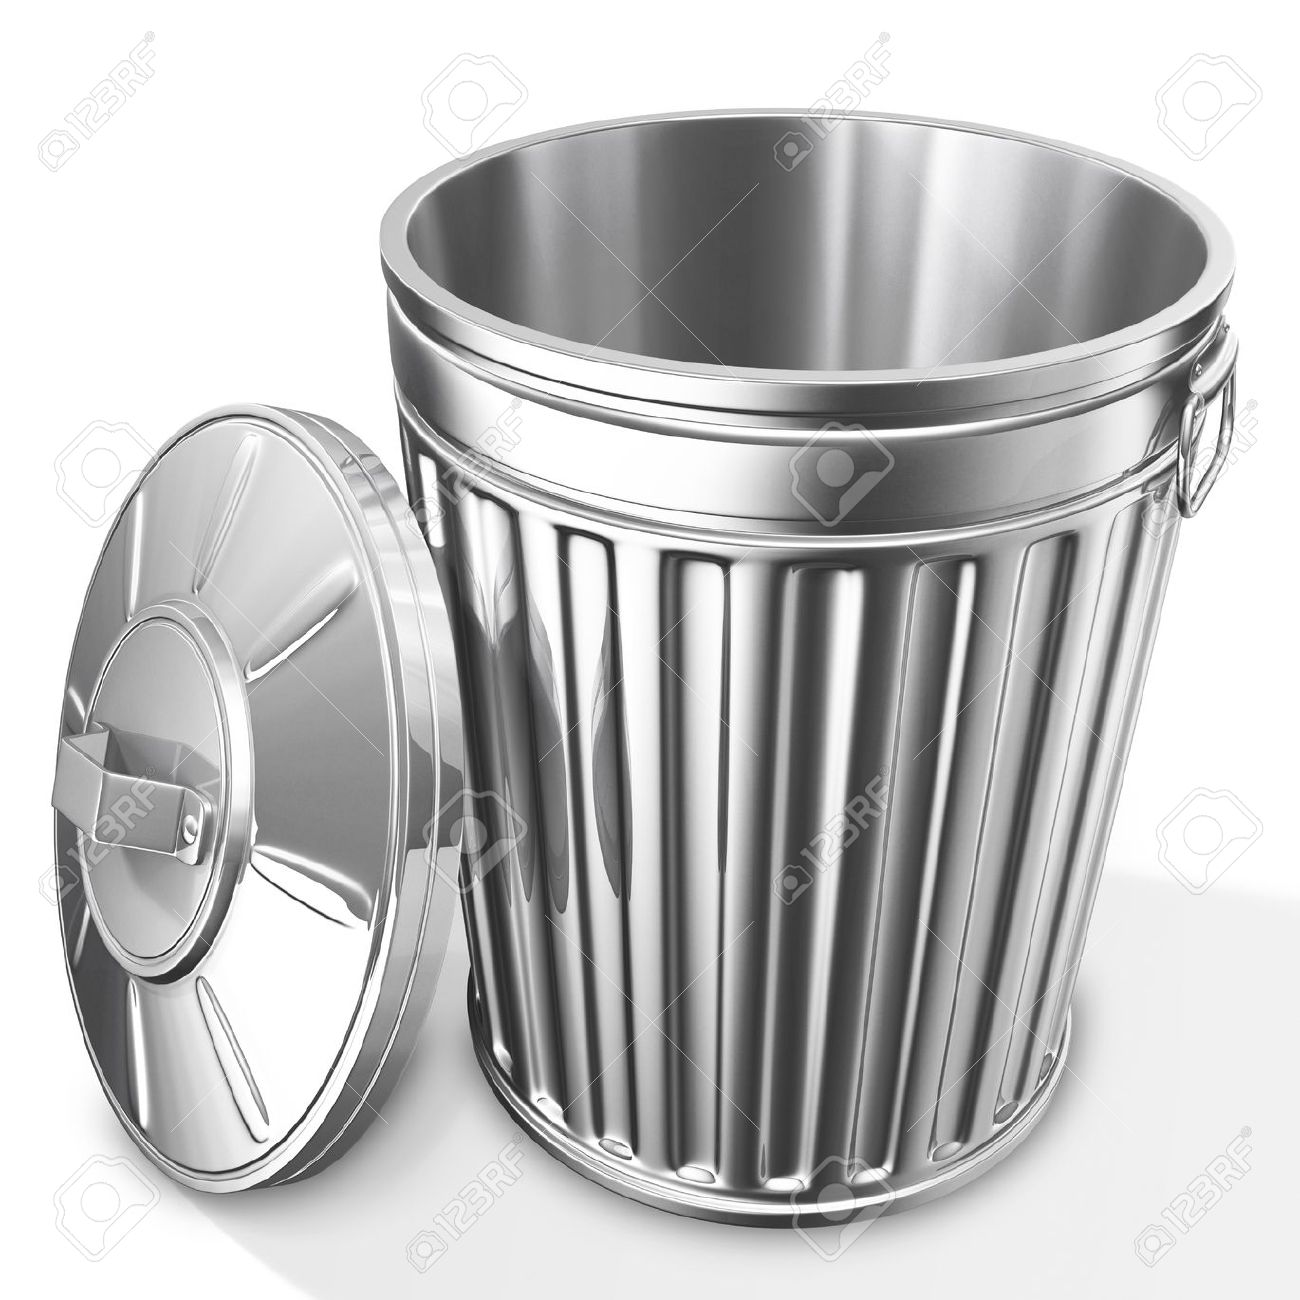 Empty Garbage Can Clipart.